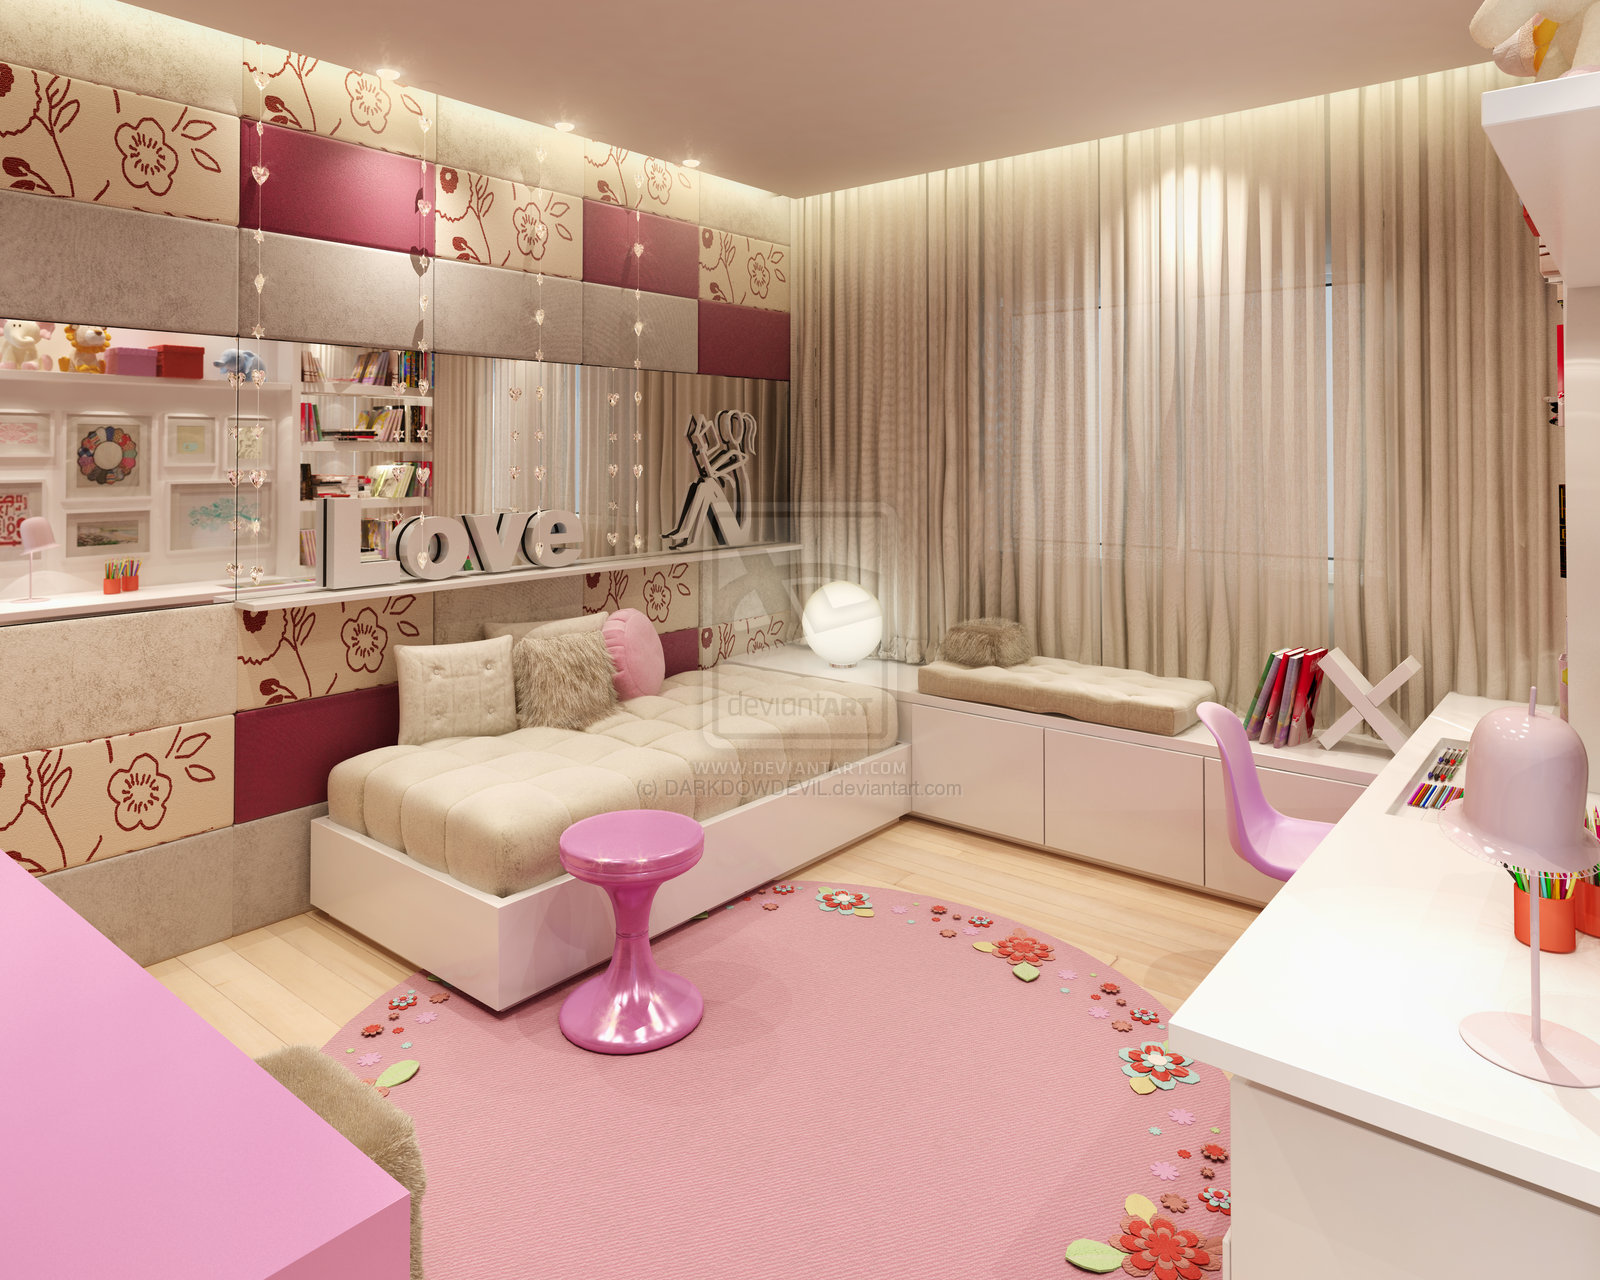 Girly bedroom design ideas azee for Cute bedroom designs for small rooms